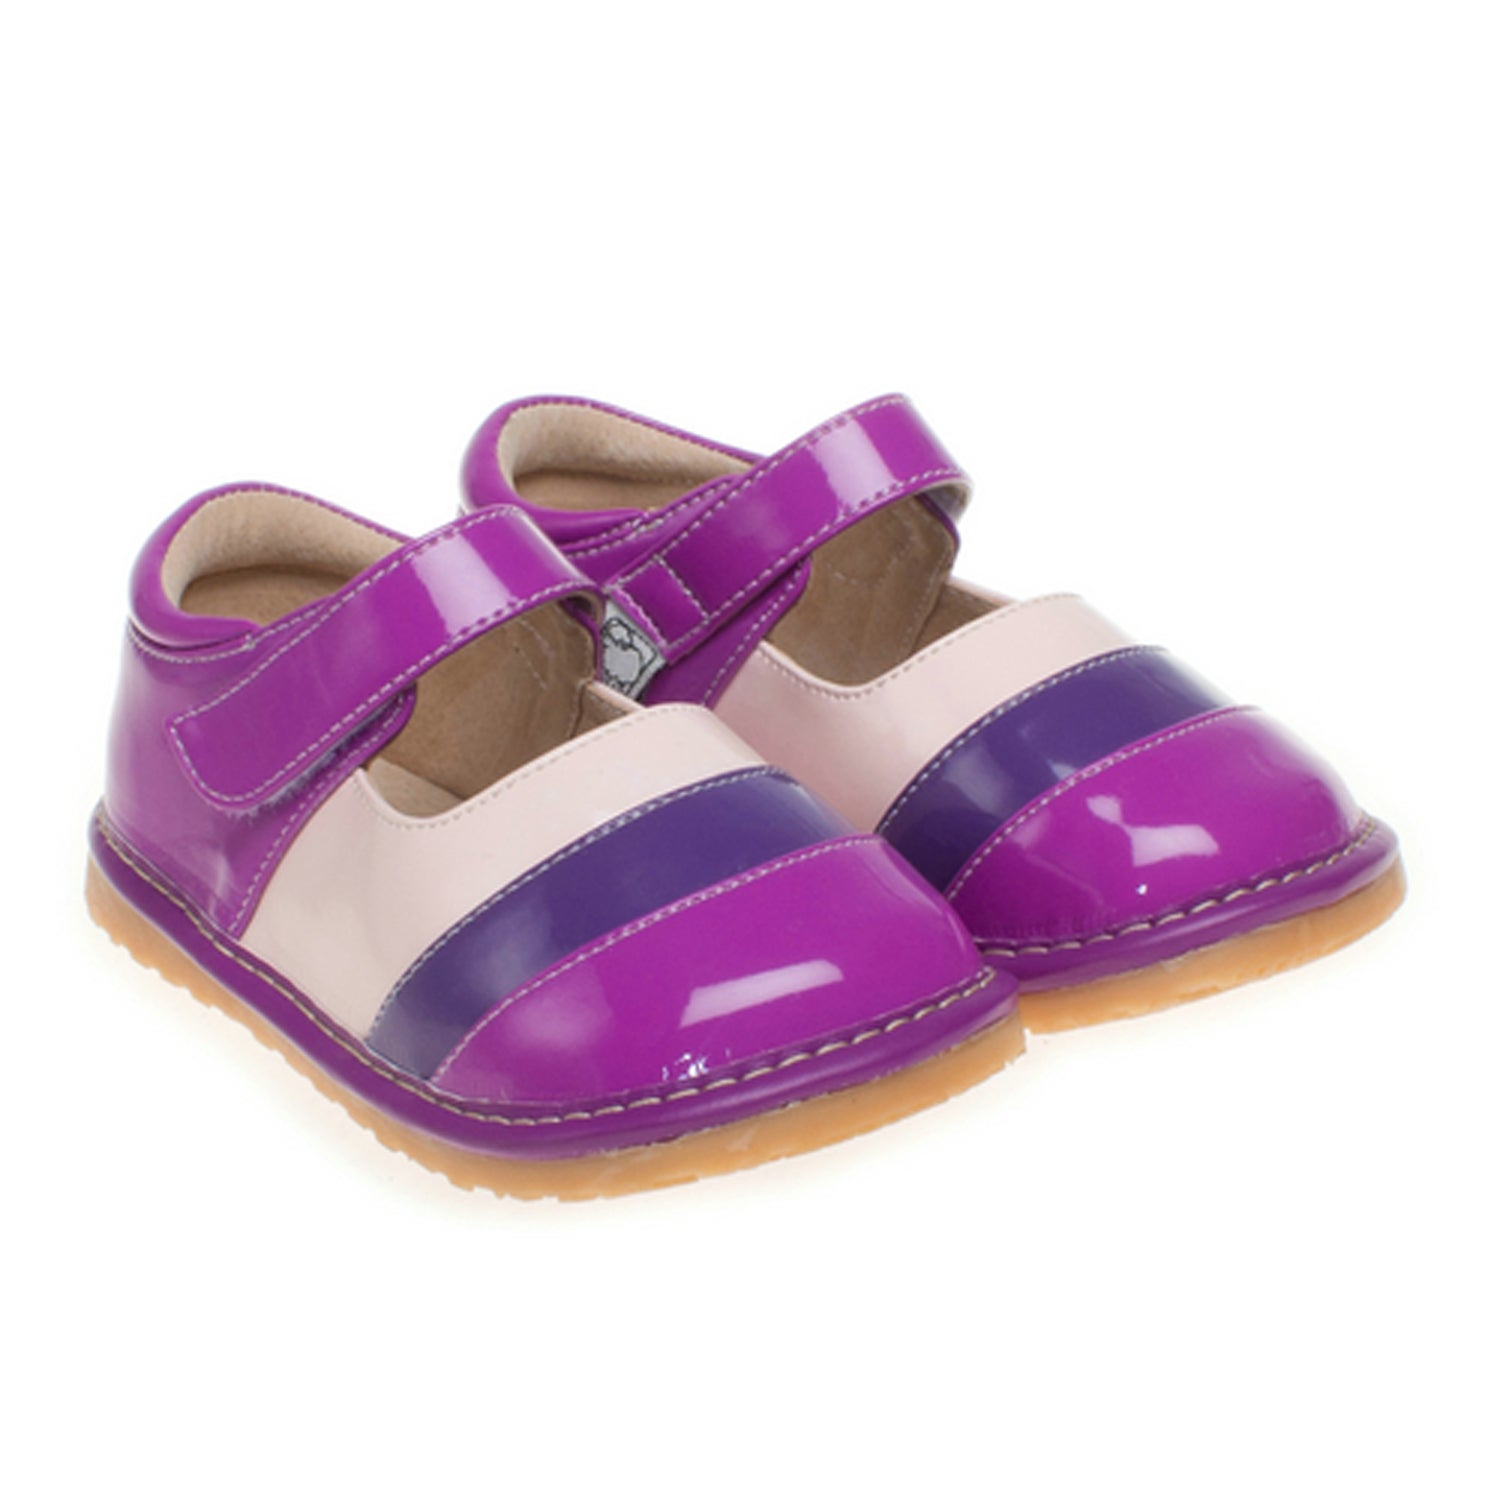 blue toddler purple squeaky shoes 14245201